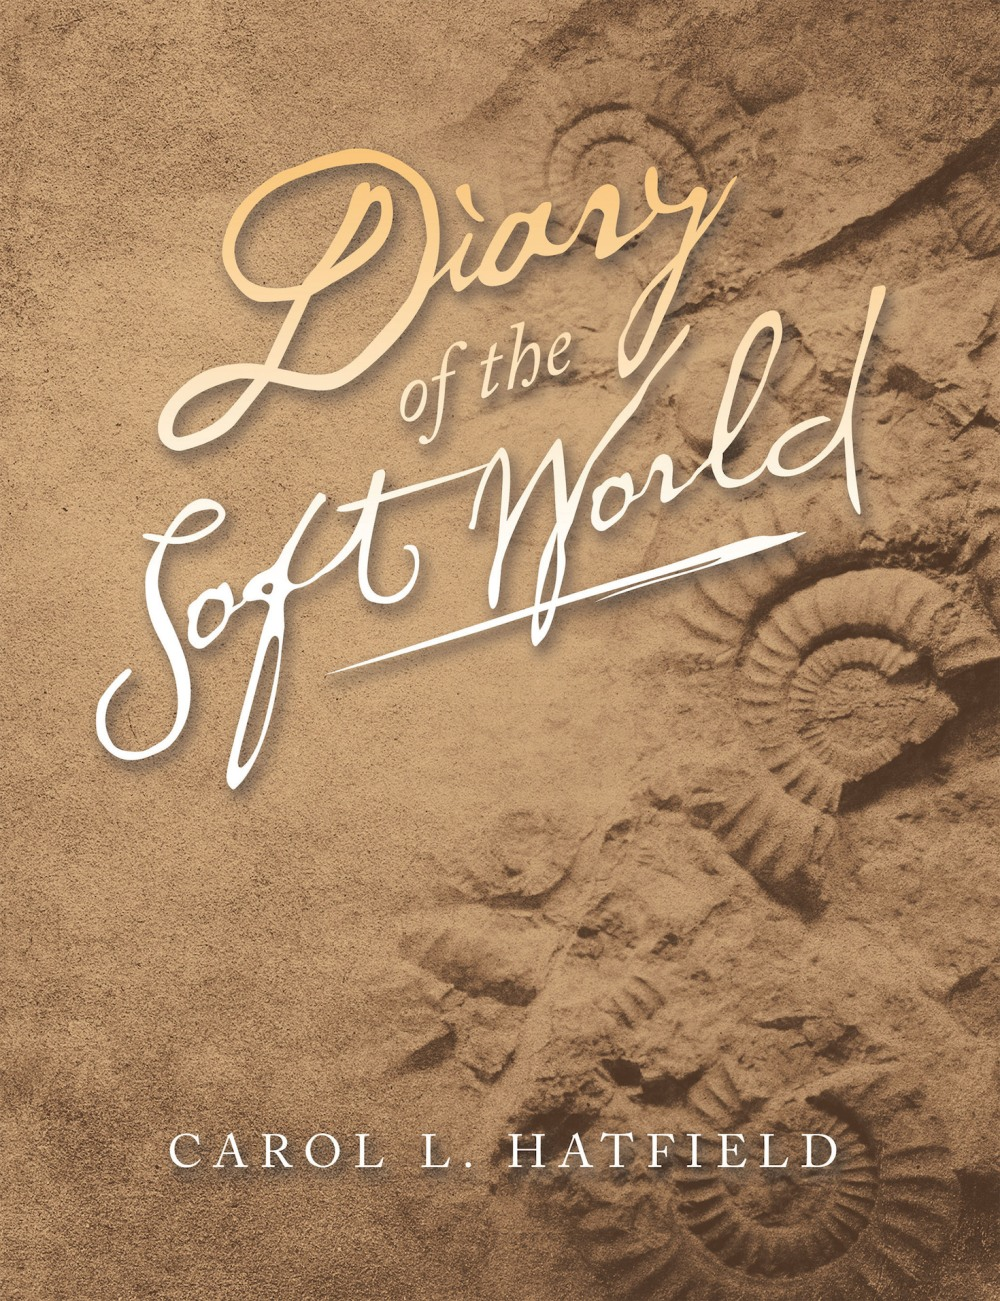 Diary of the Soft World-Carol L Hatfield-e-book-image